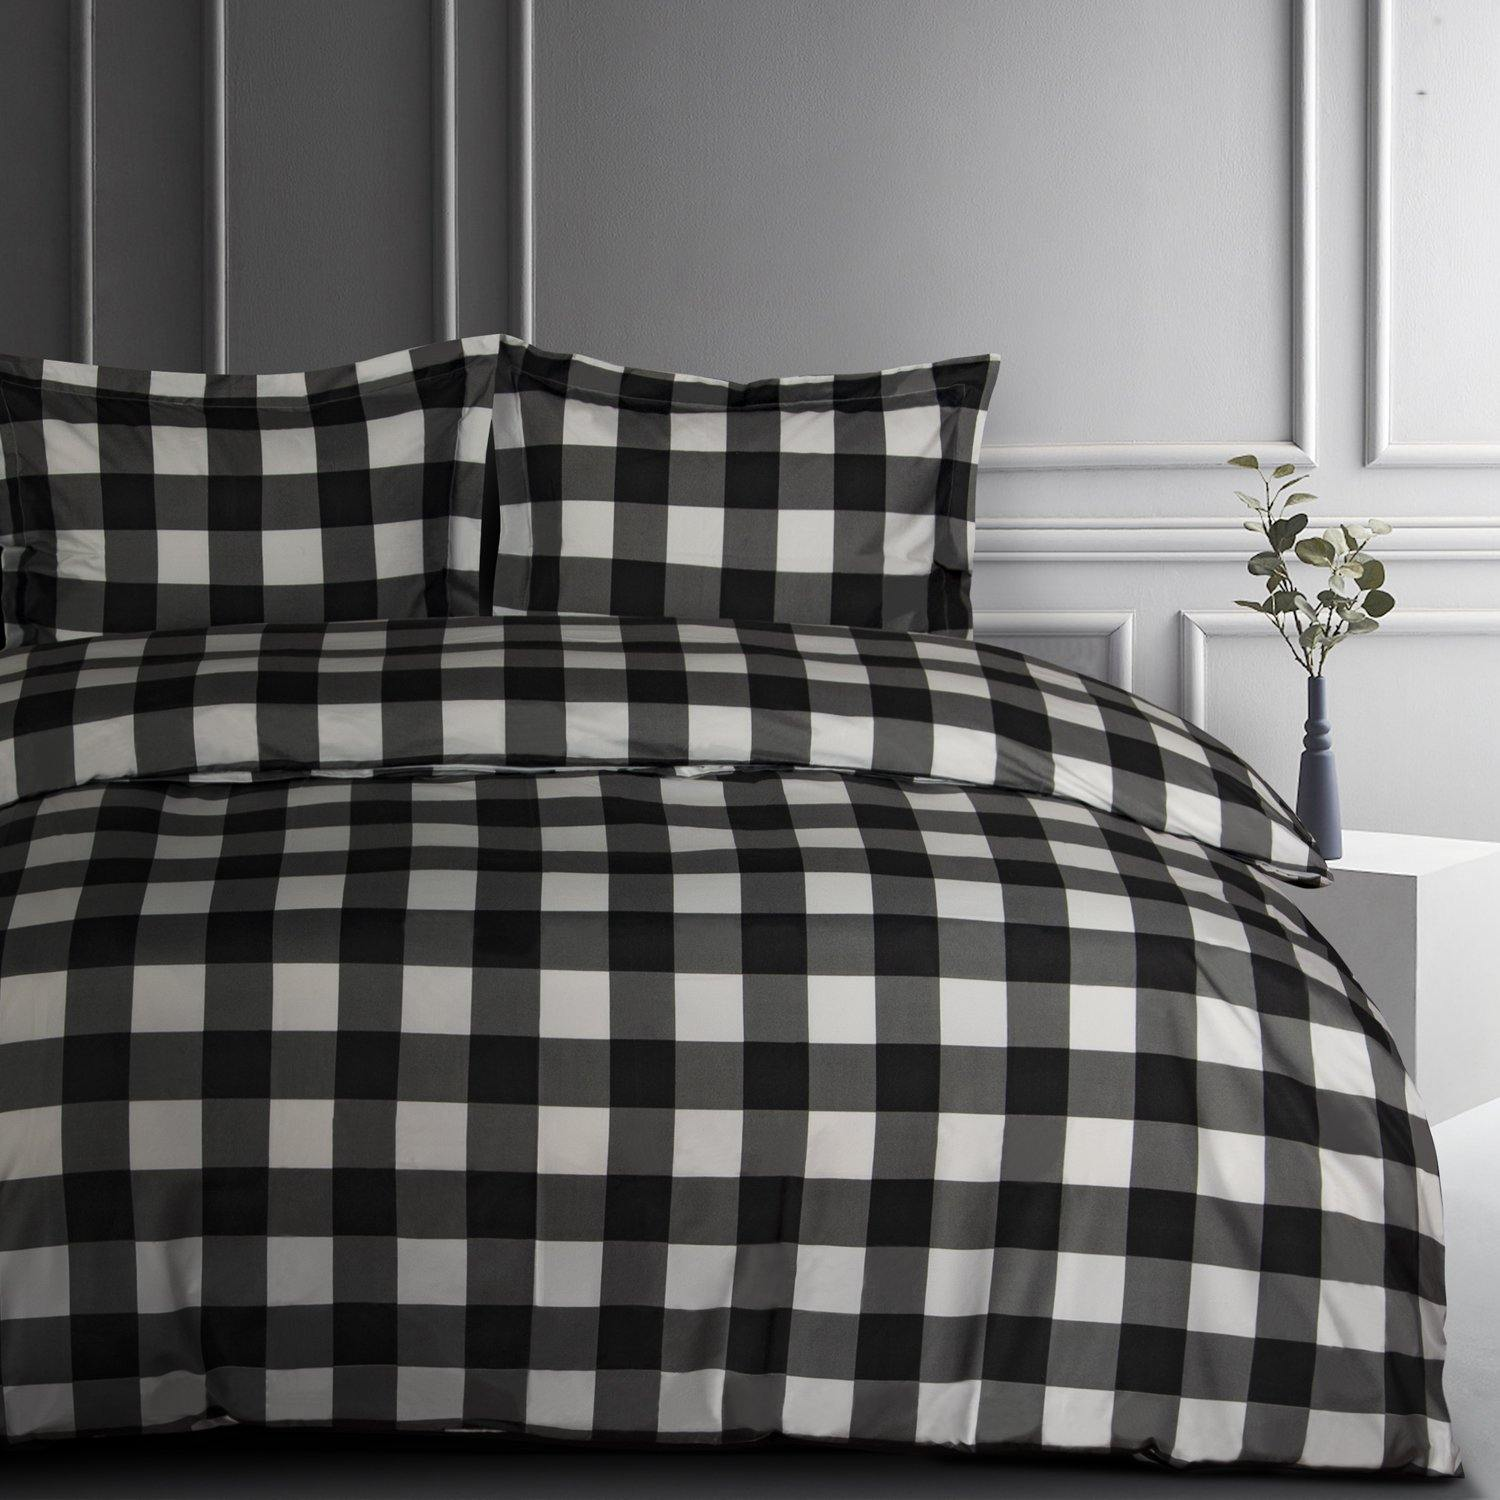 NTBAY Black and White Buffalo Check Microfiber Duvet Cover, Ultra Soft Comforter Cover Set